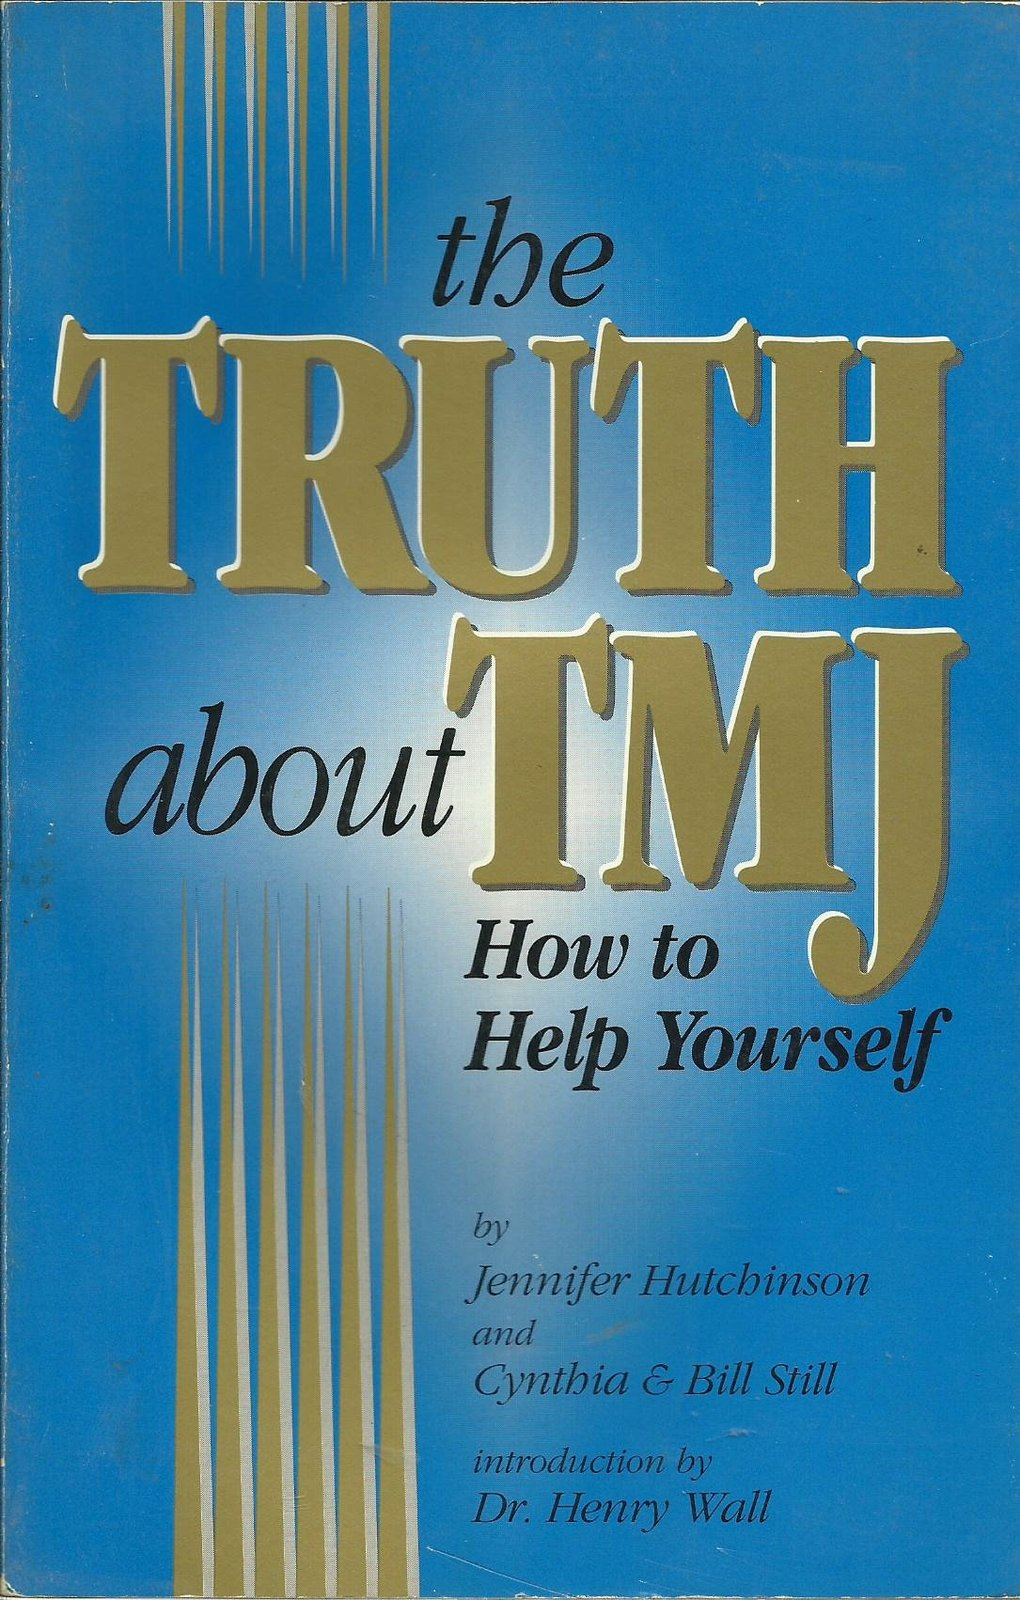 The Truth About Tmj: How to Help Yourself [Mar 01, 1994] Hutchinson, Jennifer...